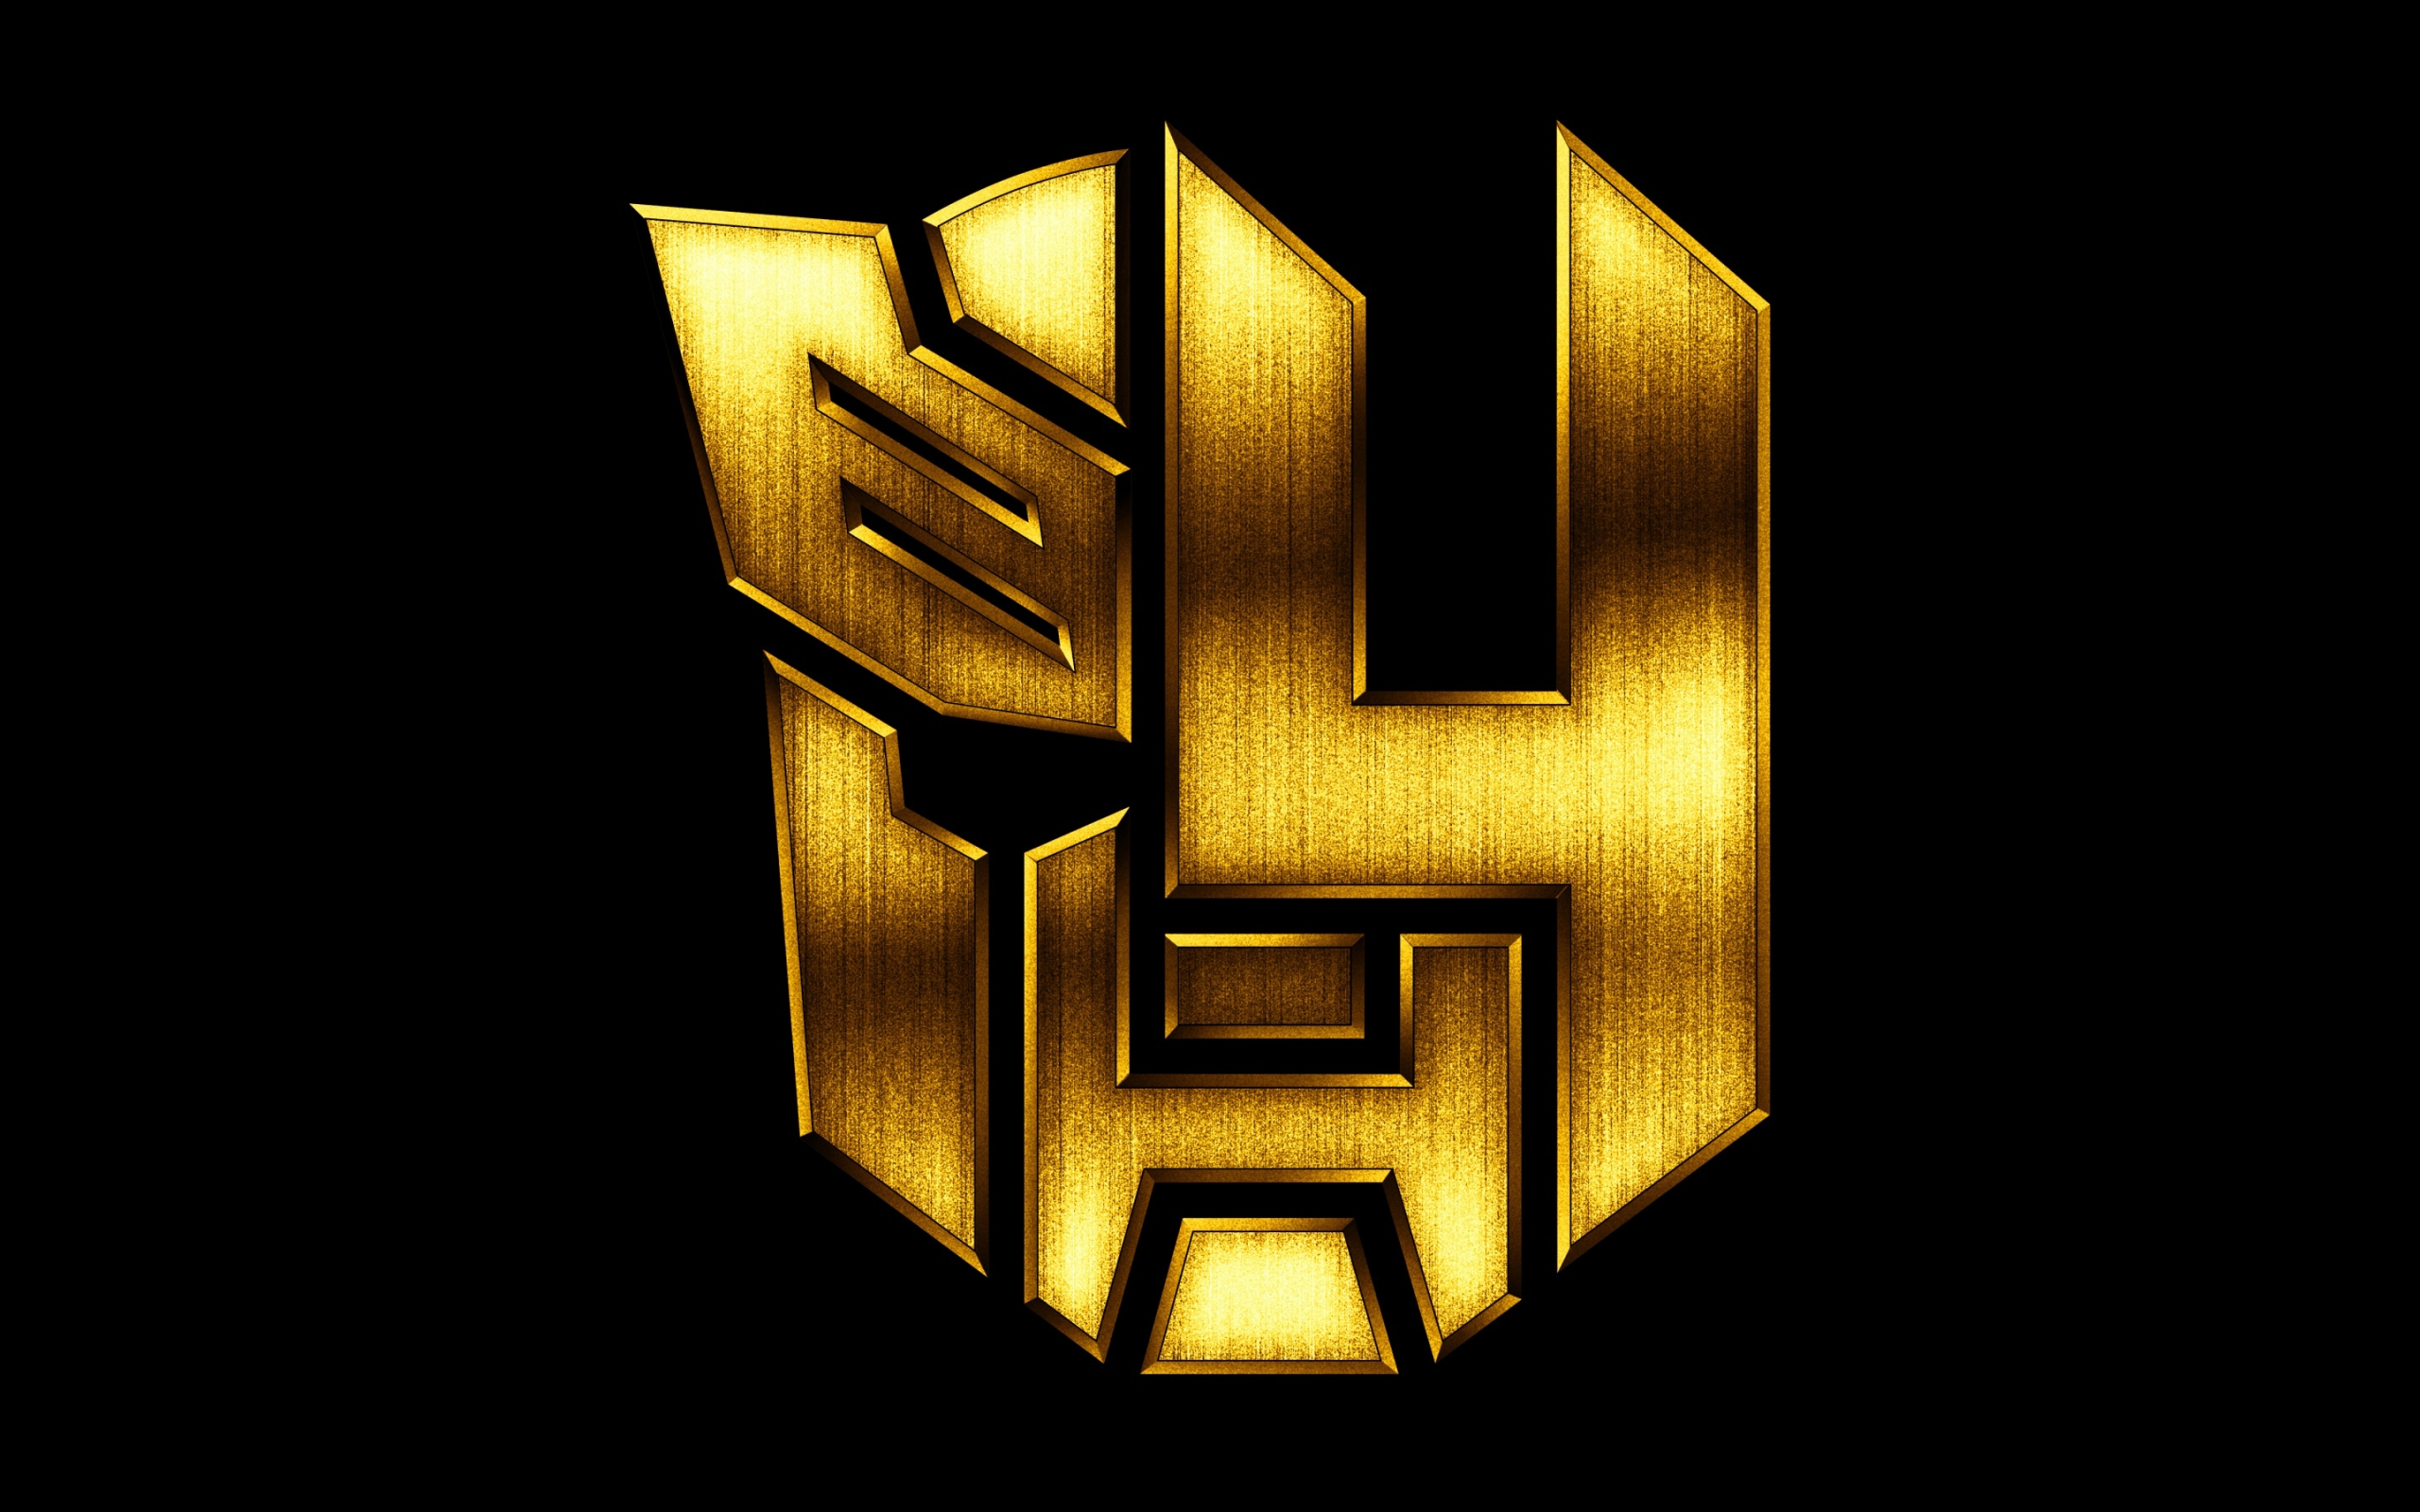 transformers-4 full hd wallpaper and background image | 2560x1600